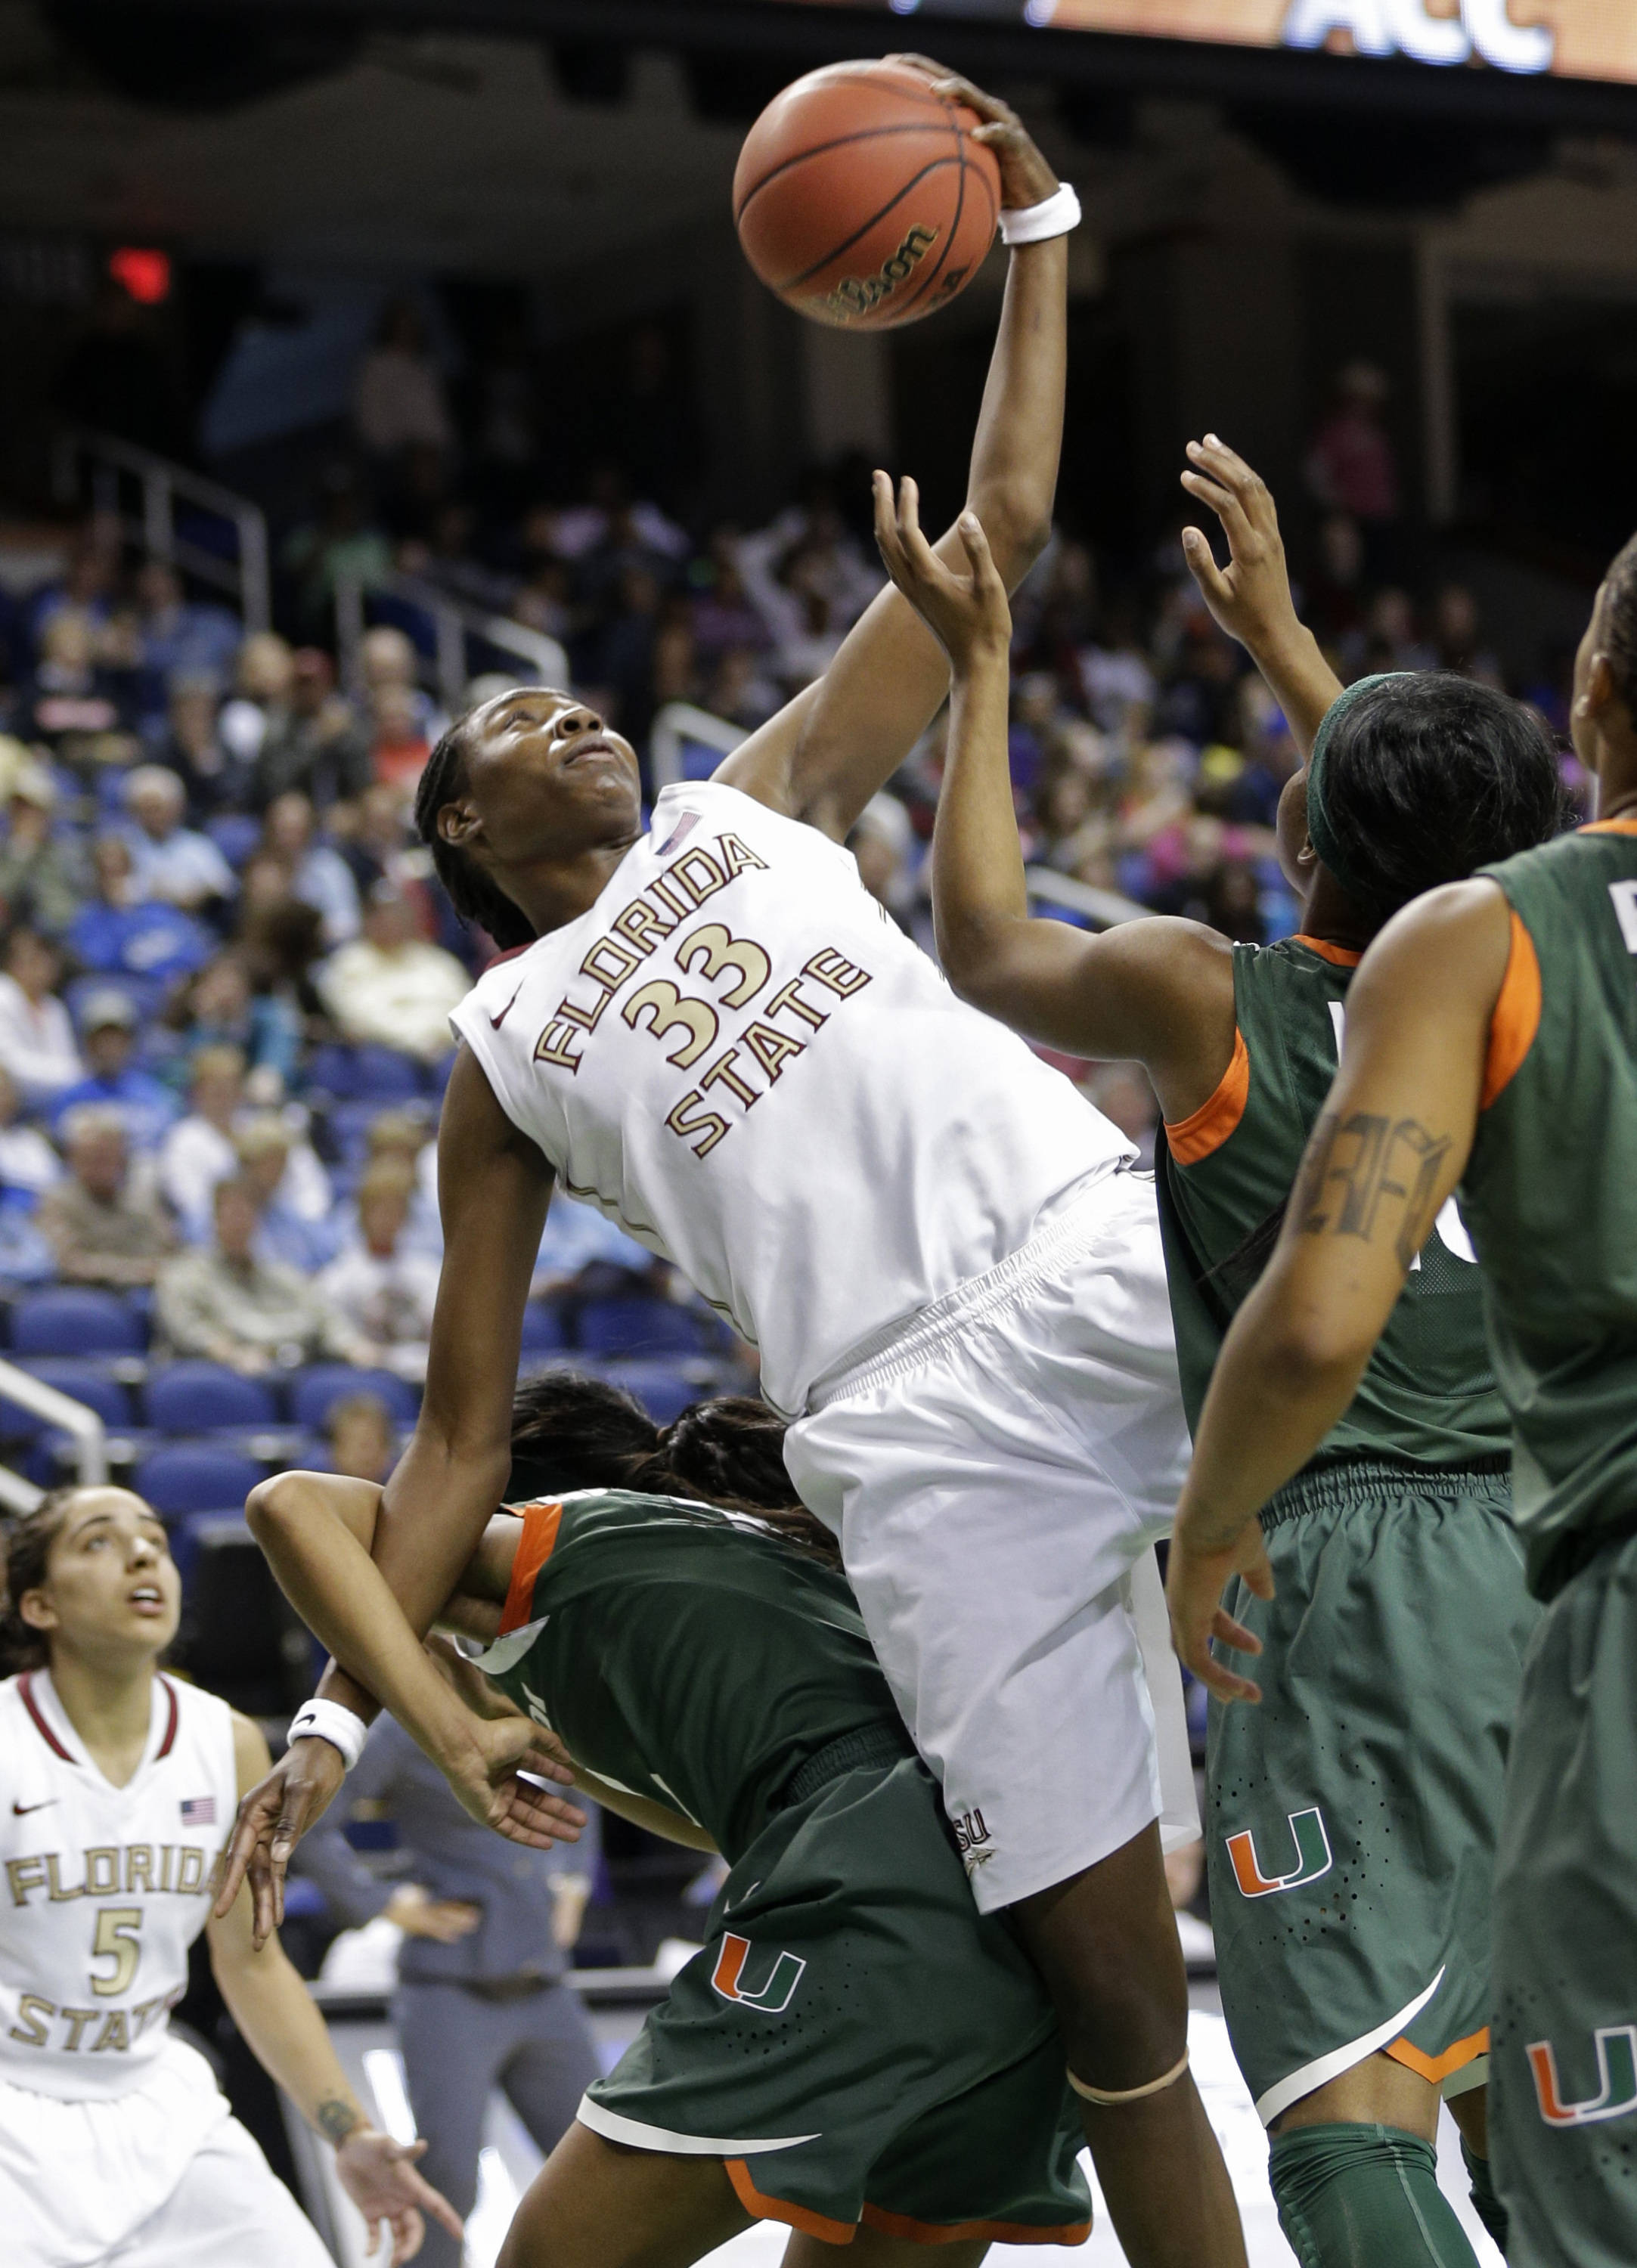 Florida State's Natasha Howard, center, grabs a rebound over Miami's Krystal Saunders, left, and Michelle Woods. (AP Photo/Chuck Burton)